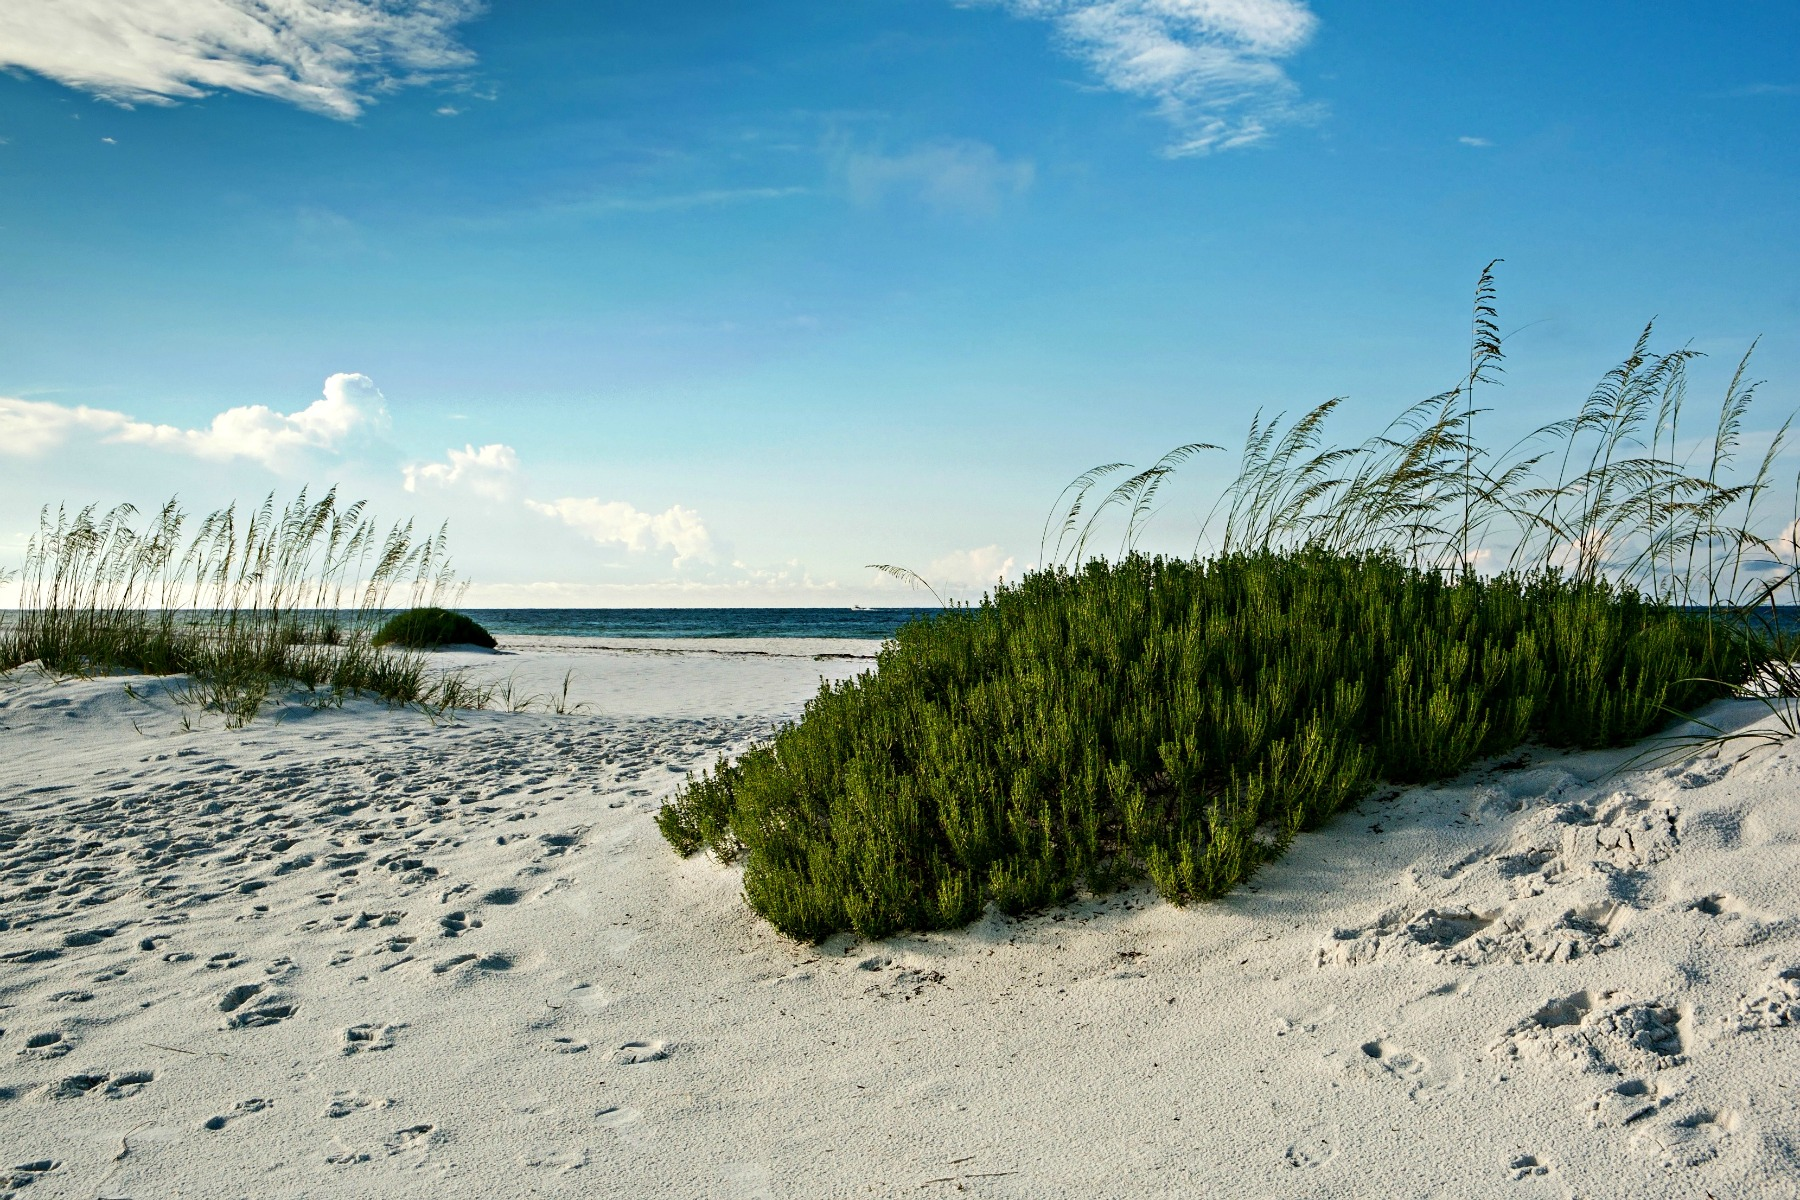 sand dunes, rosemary, and sea oats at the Gulf Coast in Northwest Florida